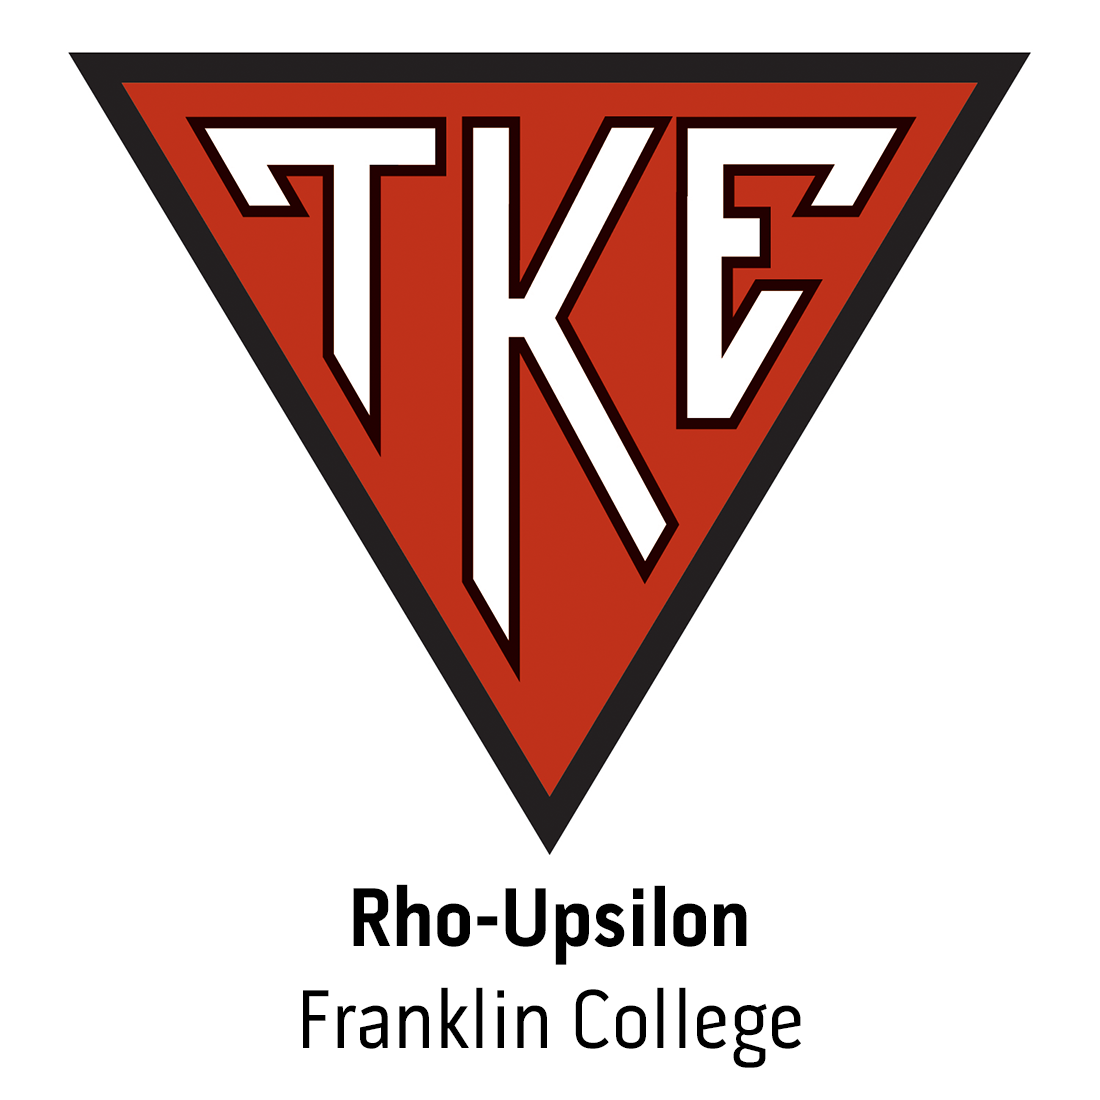 Rho-Upsilon Chapter at Franklin College